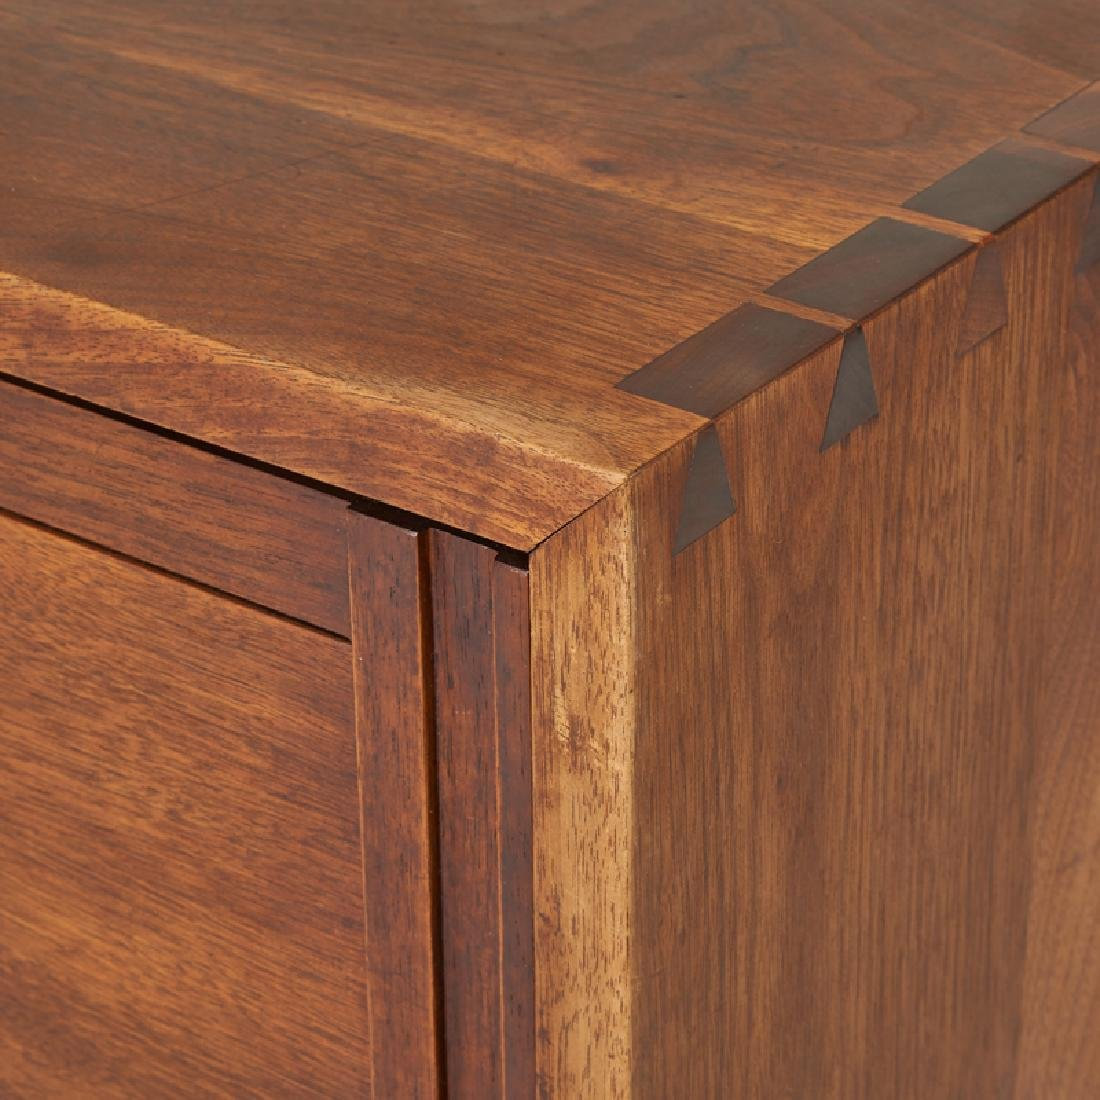 GEORGE NAKASHIMA Sliding Door Cabinet - 8